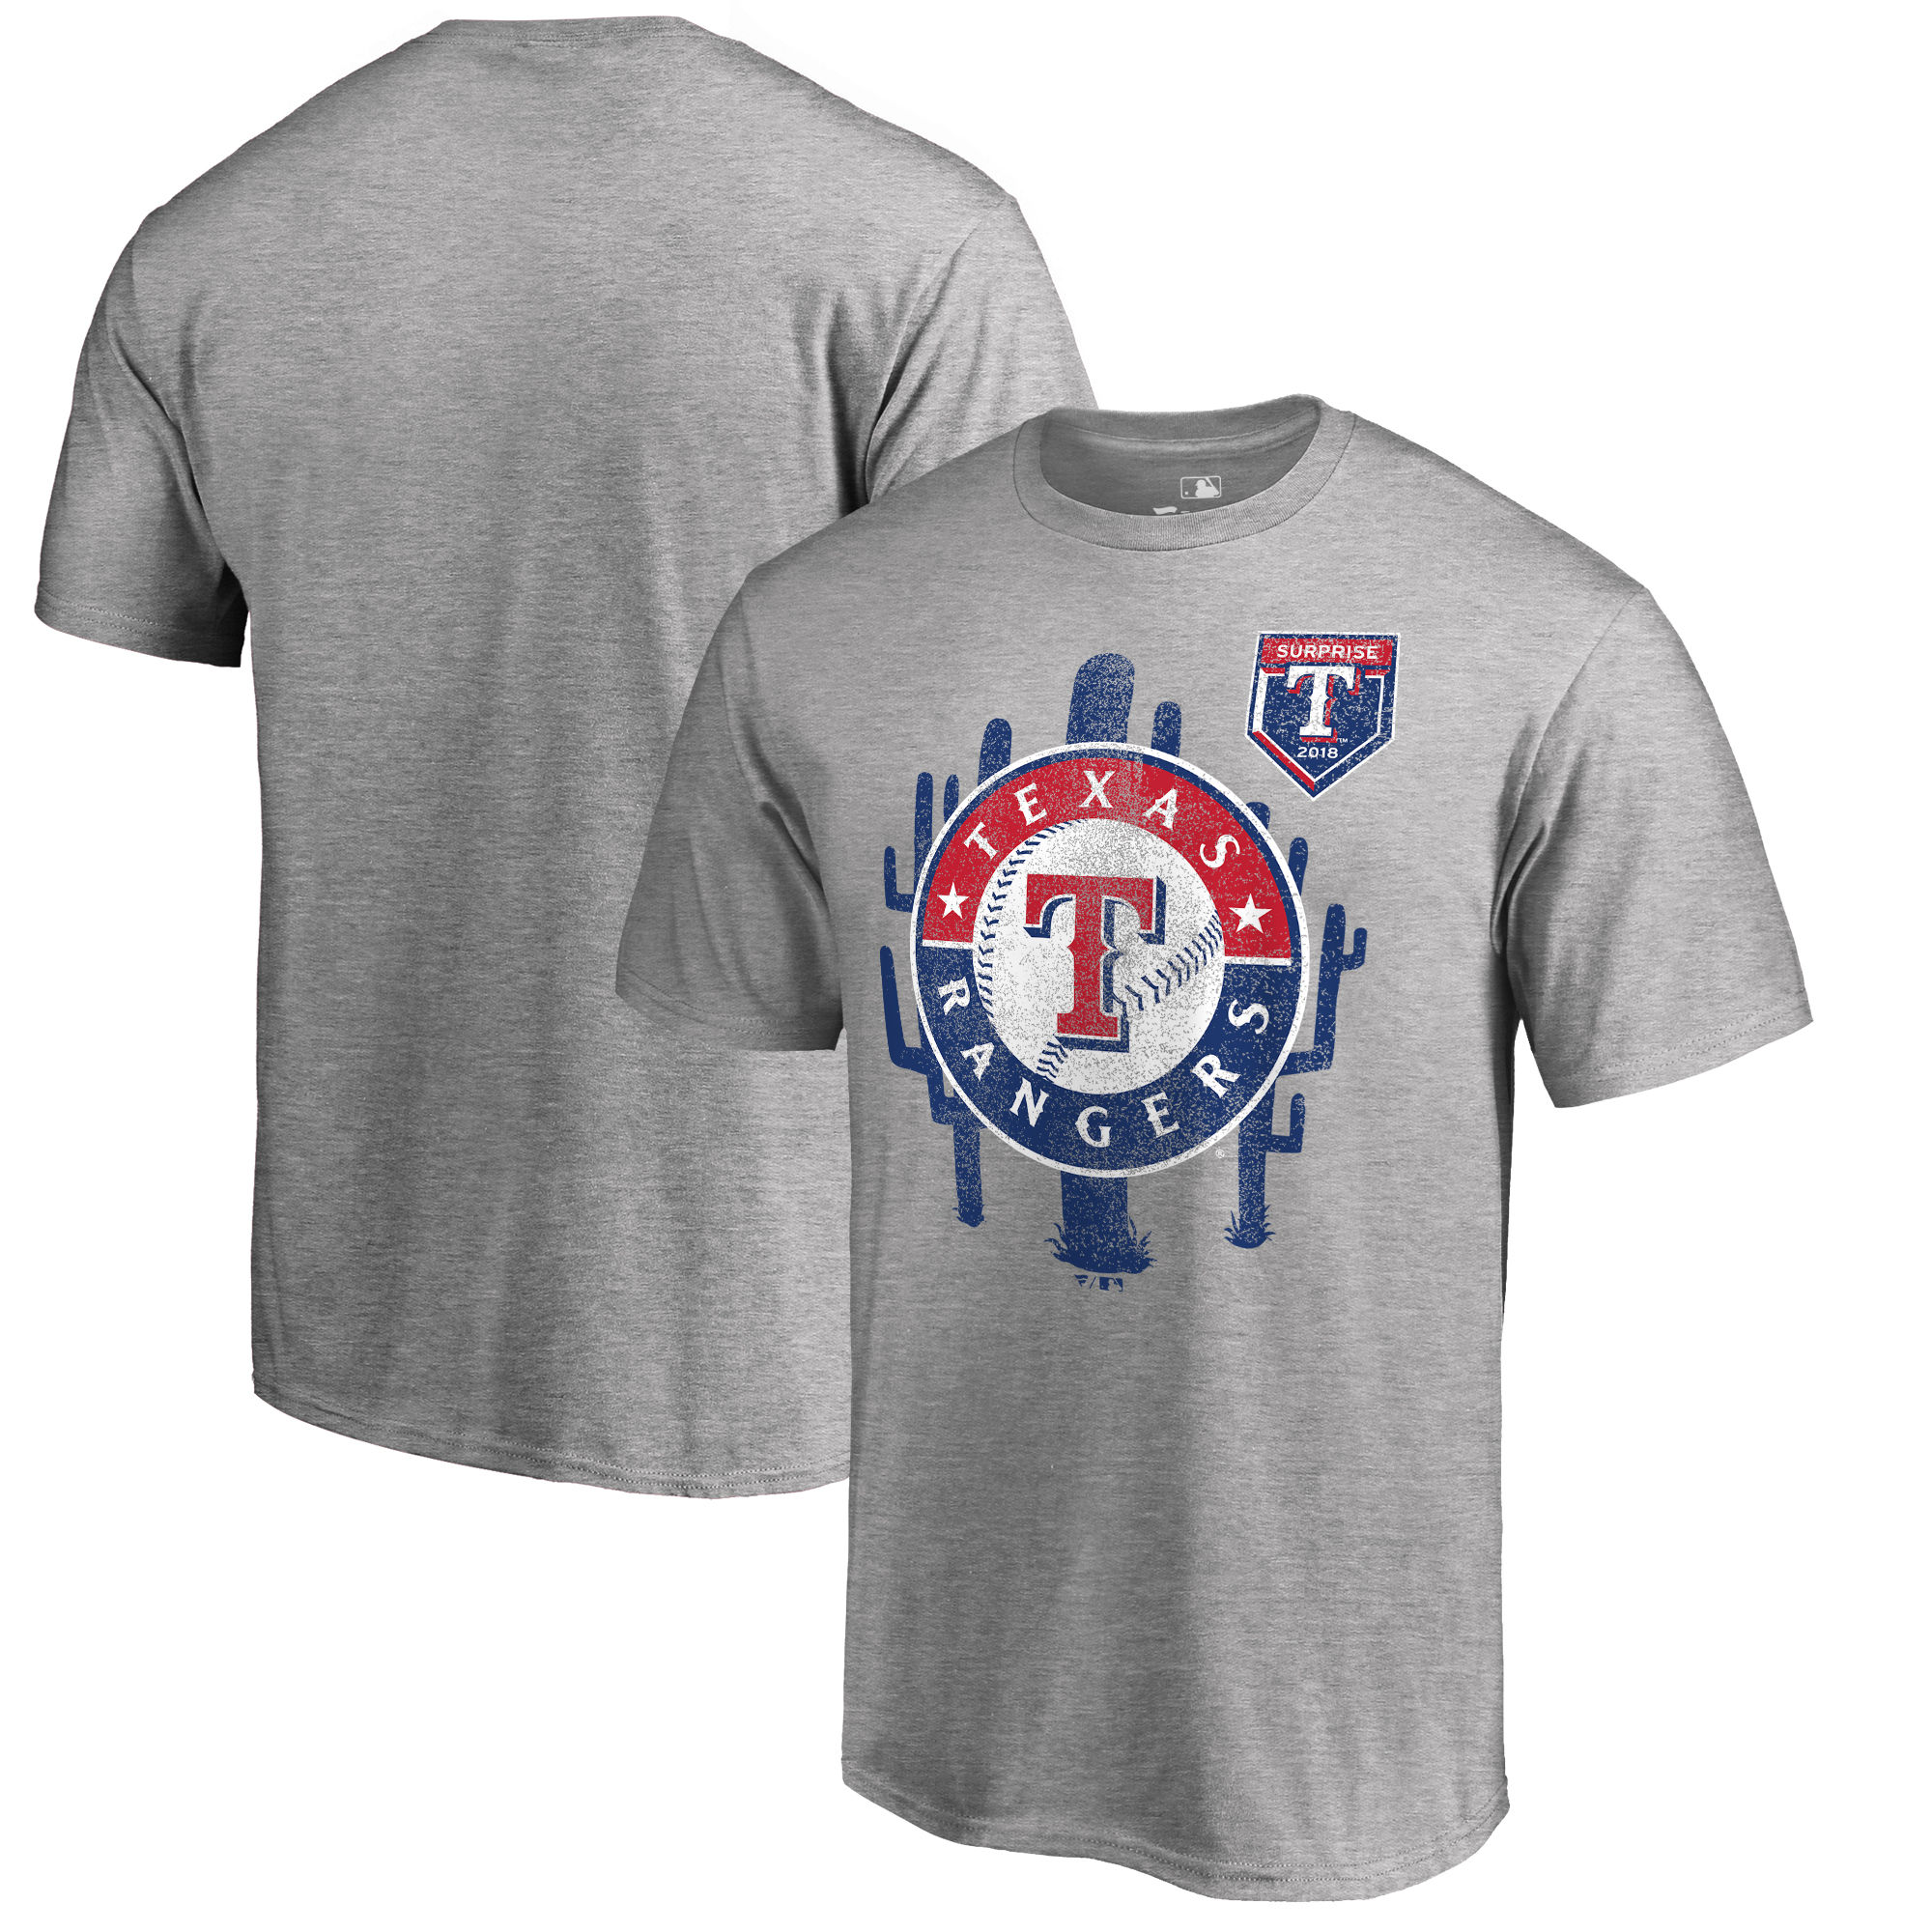 Men's Texas Rangers Fanatics Branded 2018 MLB Spring Training Vintage T-Shirt – Heather Gray